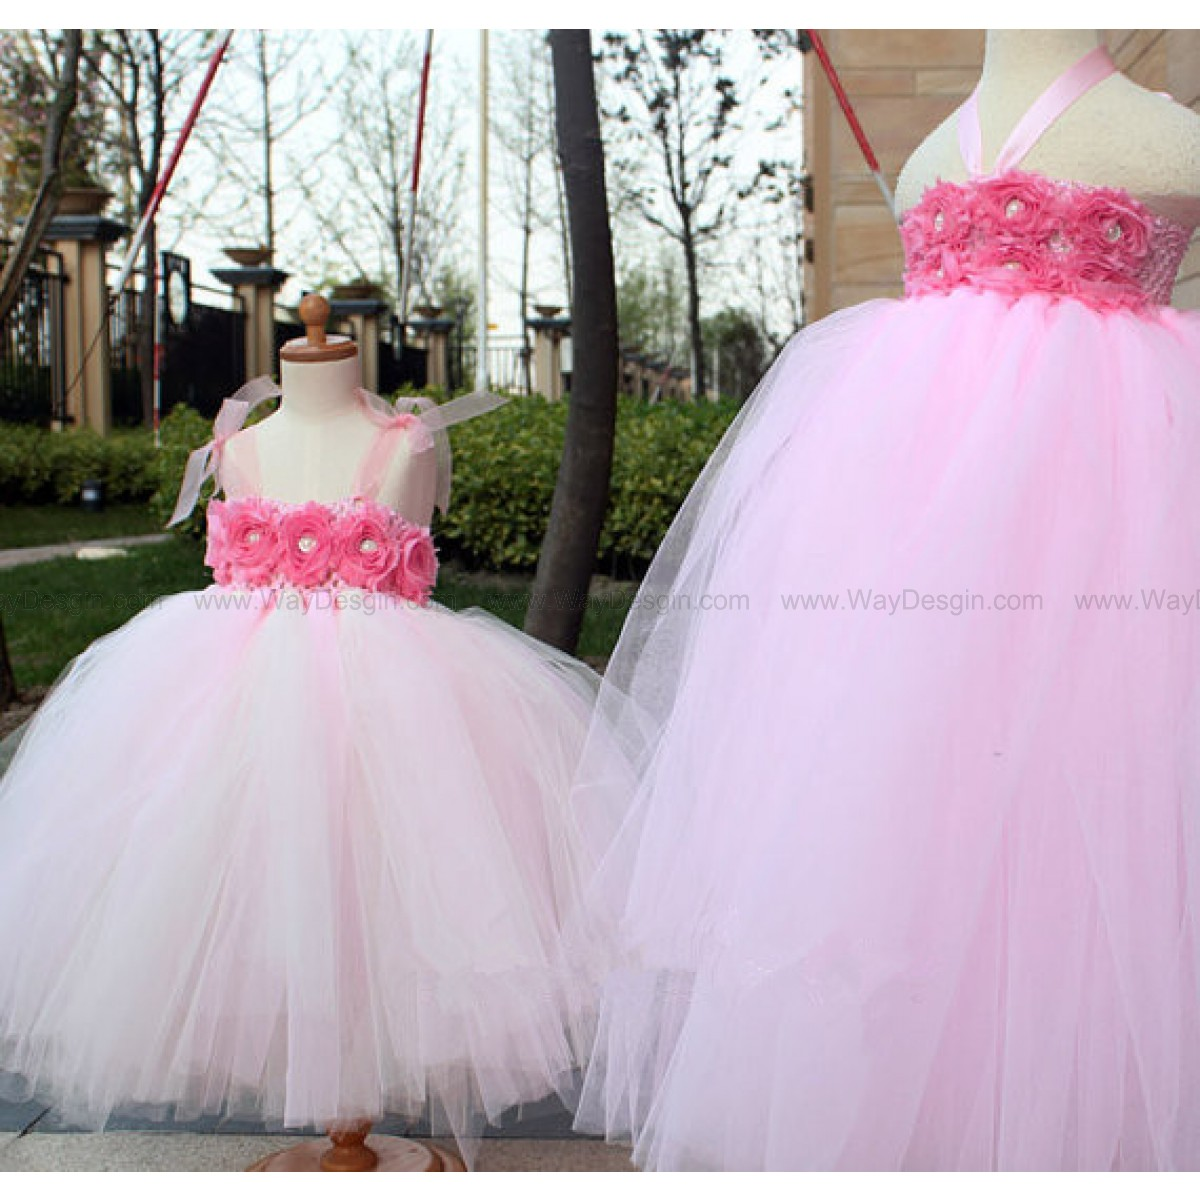 Flower girl dress pink tutu dress baby dress toddler for Flower girls wedding dress